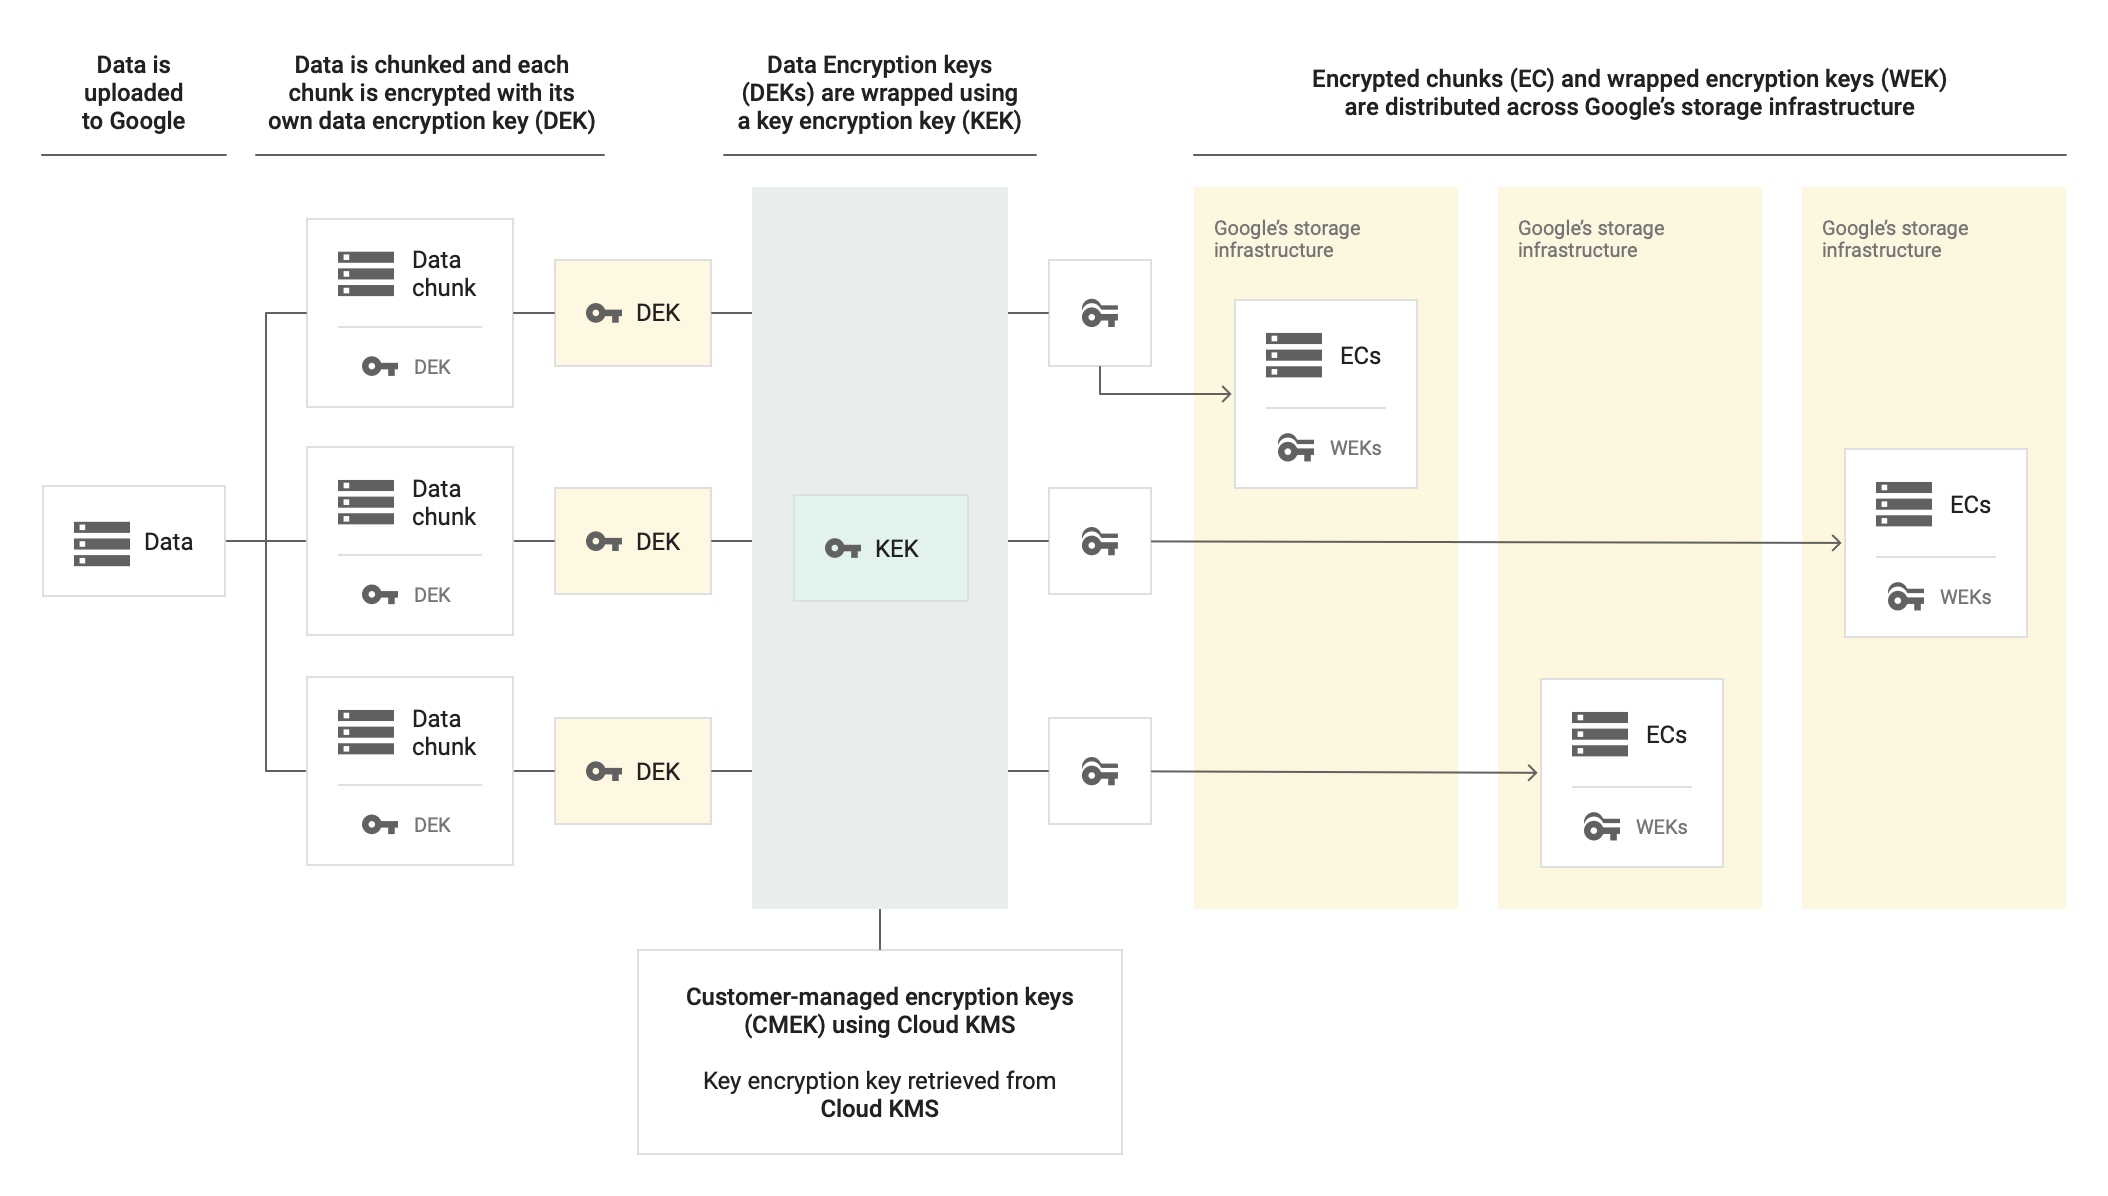 Data is uploaded to Google, then chunked and each chunk is encrypted with its own data encryption key. Data Encryption keys are wrapped using a key encryption key. With CMEK using Cloud KMS, the key encryption key is retrieved from Cloud KMS. Encrypted chunks and wrapped encryption keys are distributed across Google's storage infrastructure.